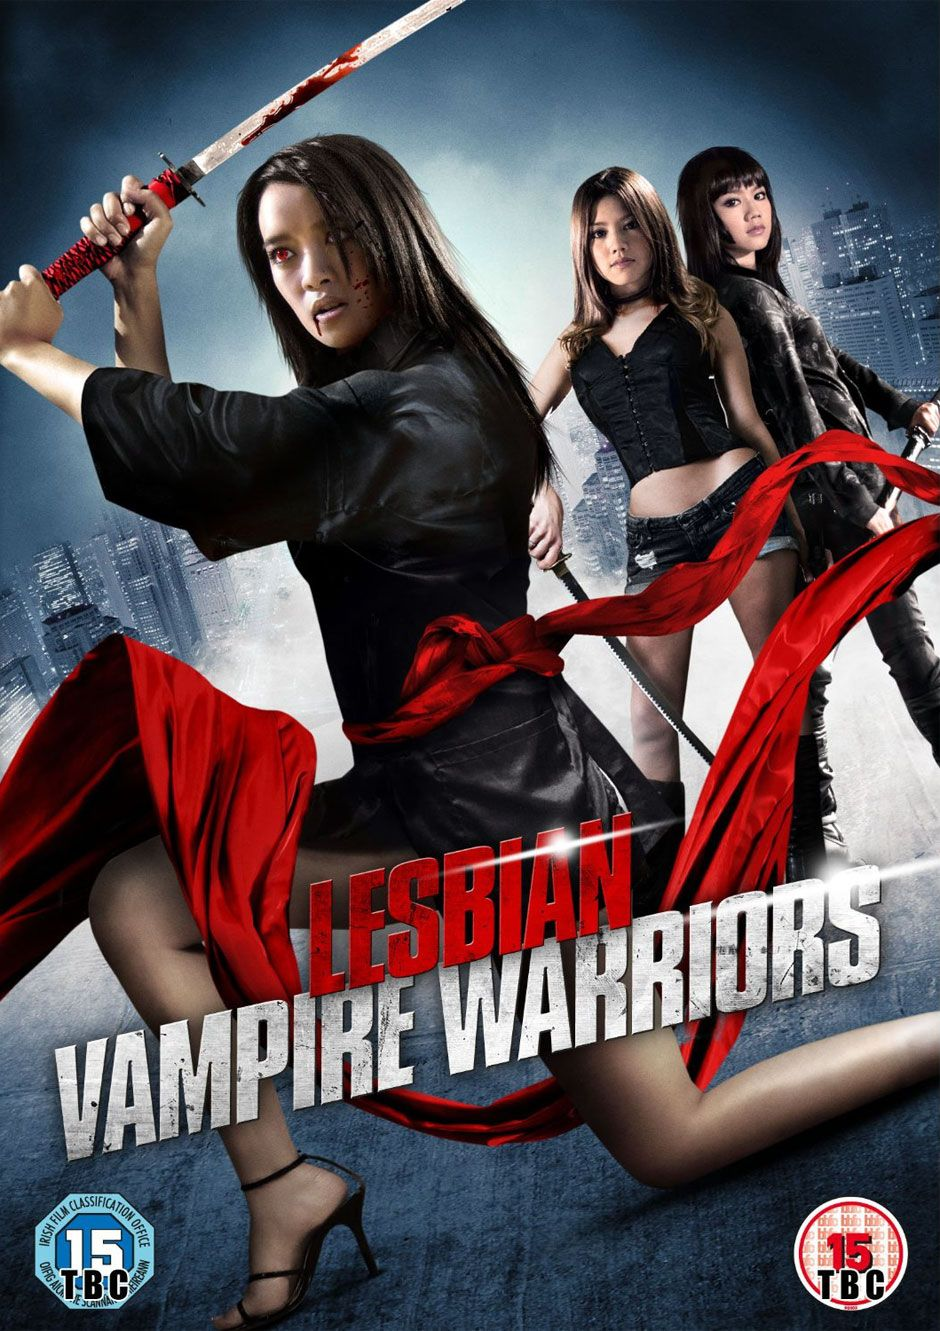 All Vampire Movies On Dvd Images Buy Lesbian Vampire Warriors On